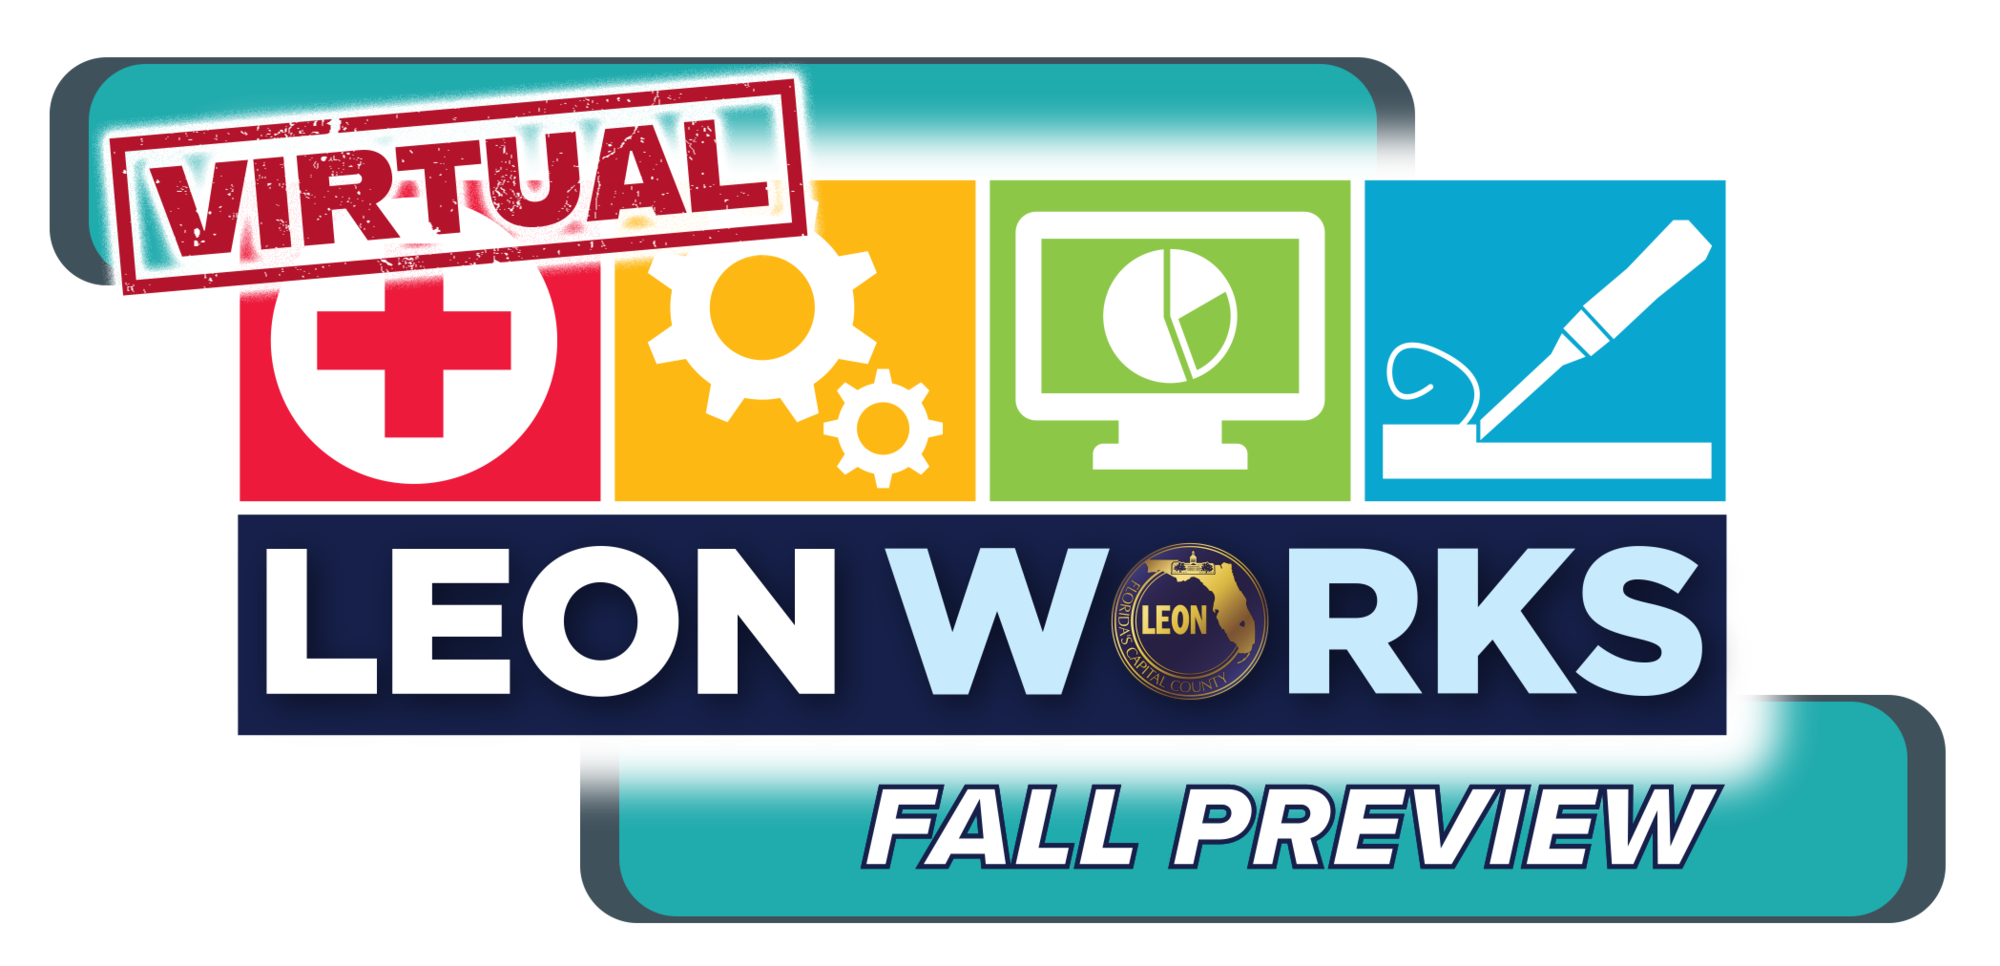 Leon Works Virtual Fall Preview